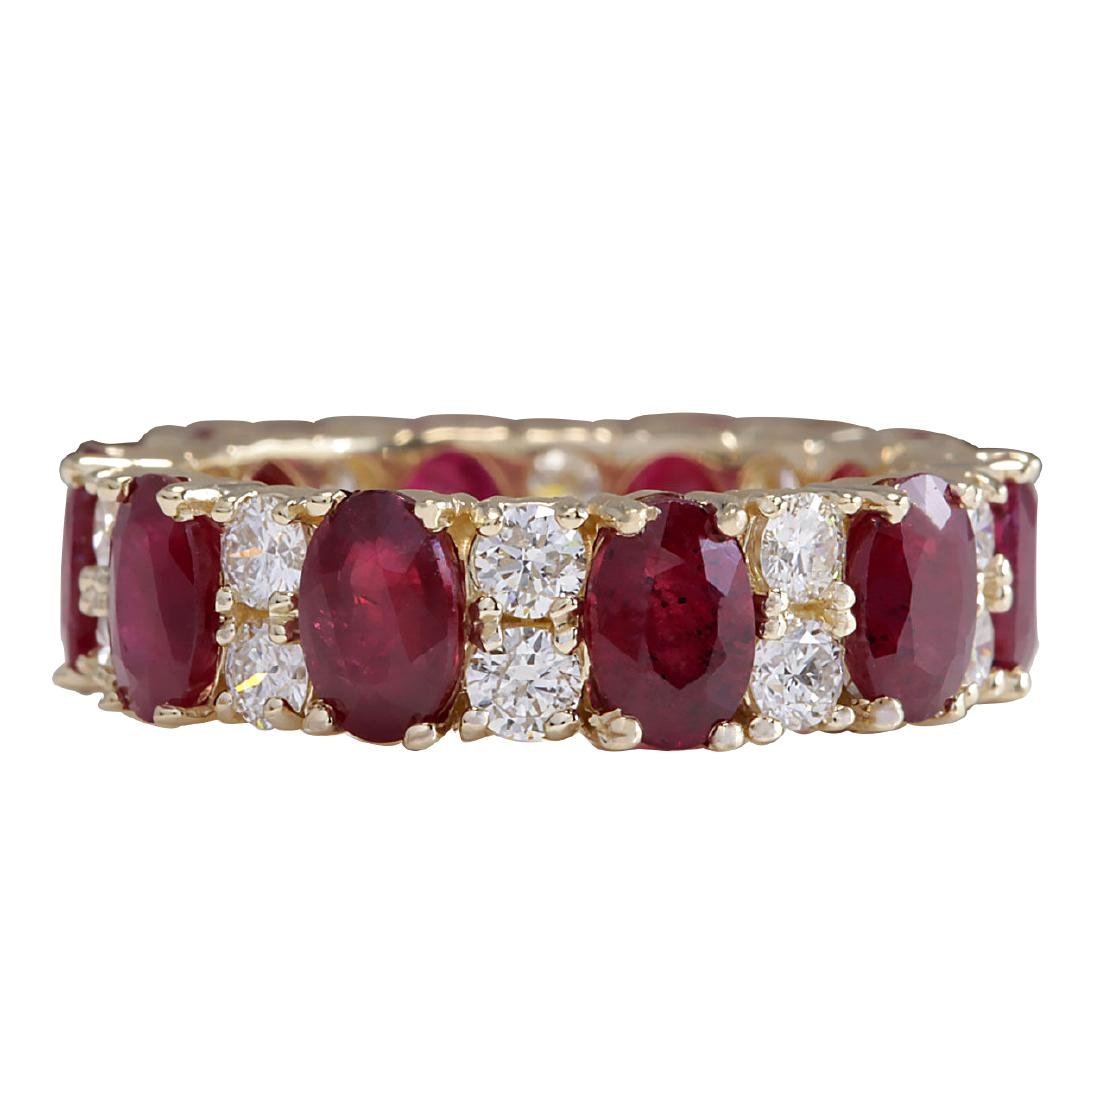 8.07CTW Natural Red Ruby Diamond Ring 18K Solid Yellow